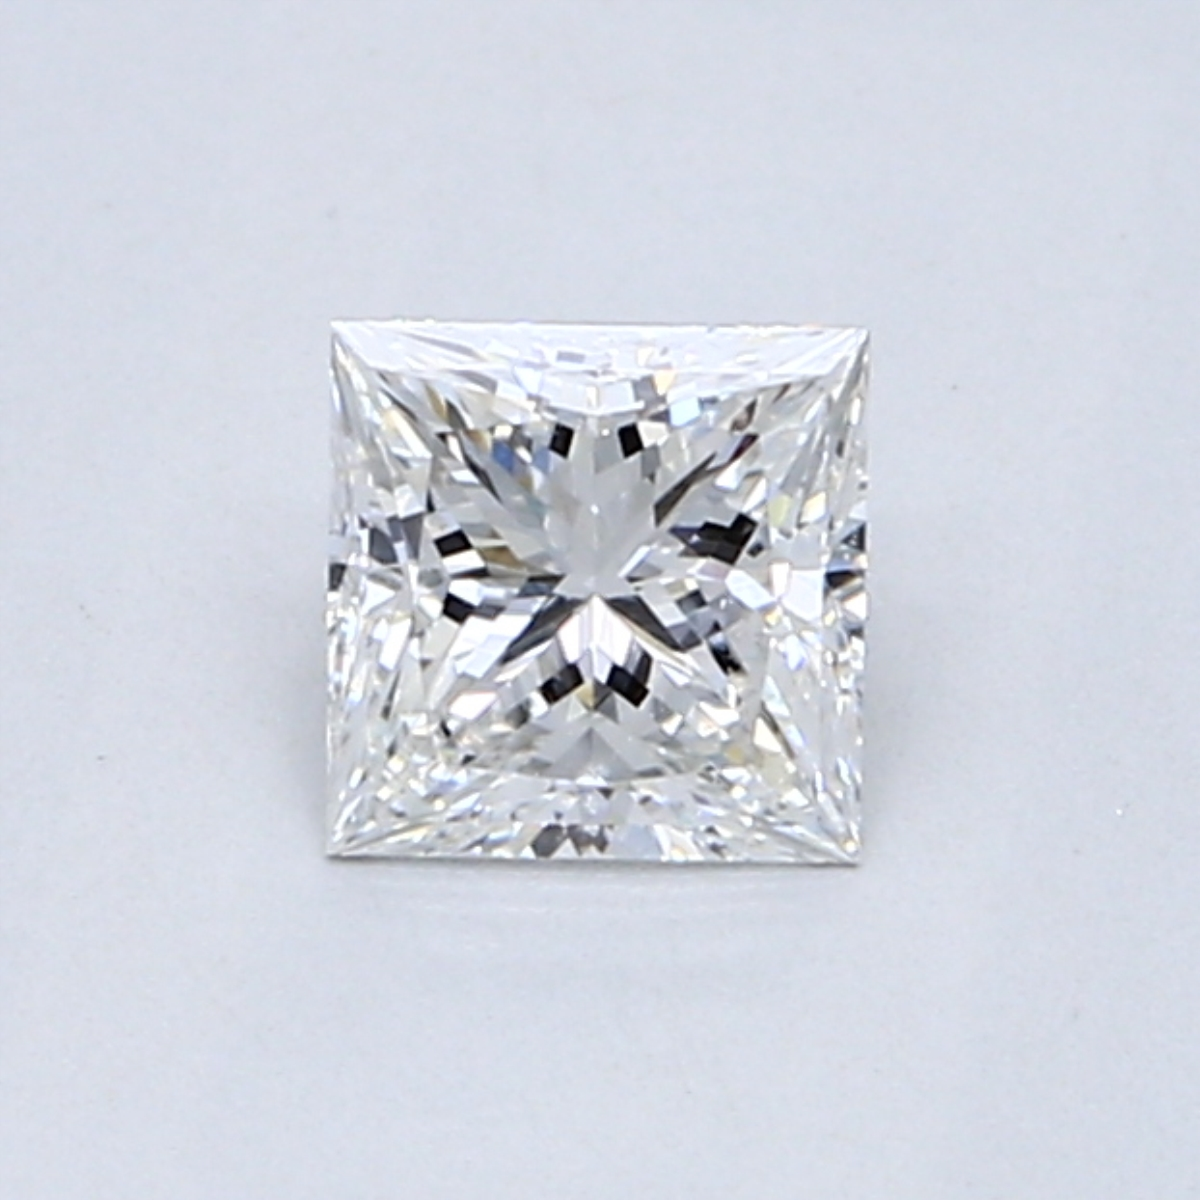 0.56 Carat E SI1 Good Diamond